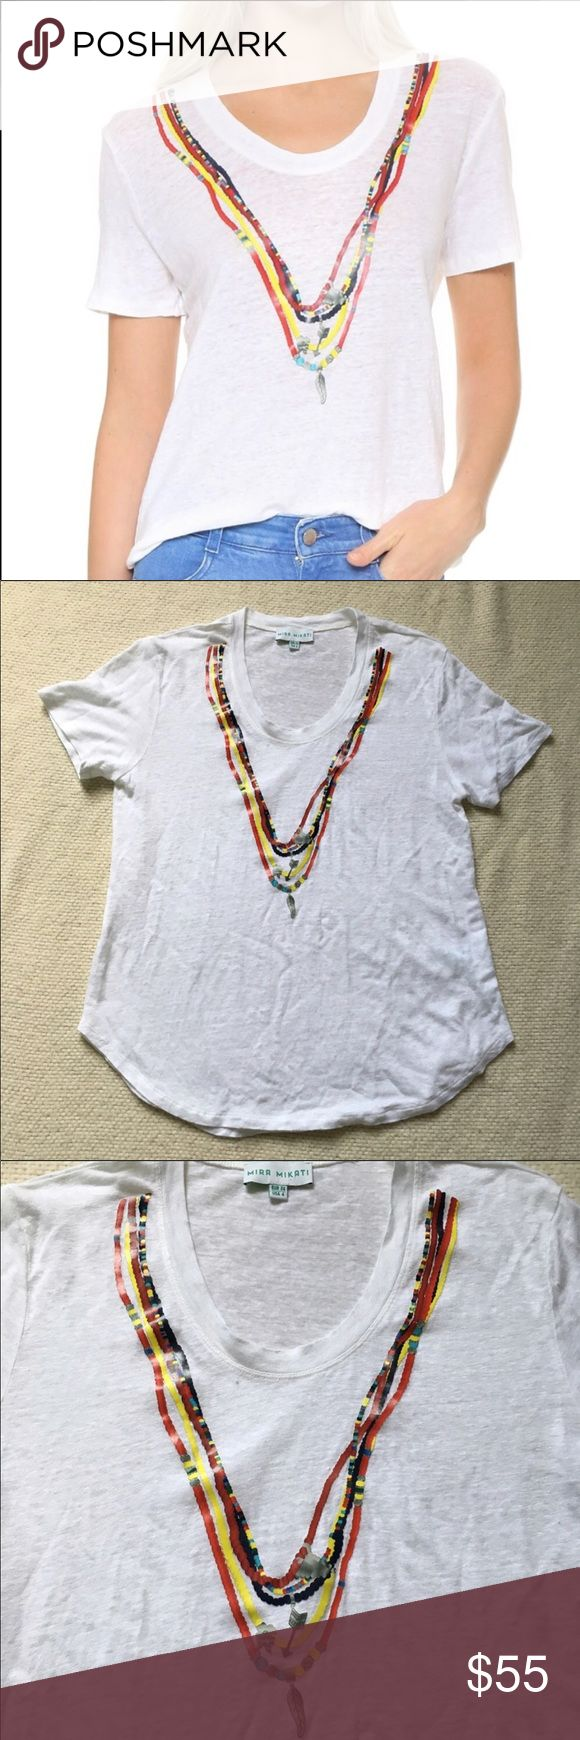 Mira Mikati Printed Bead Necklace Tee Mira Mikati Printed Bead Necklace Tee in size 4. Designer Mira Mikati co-owns the high-end Beirut boutique Plum, a curated collection of clothing that serves as a fashion mecca for the women of Lebanon. Photoreal necklace prints frame the scoop neckline on this linen Mira Mikati tee. Short sleeves. Semi-sheer. Curved hem. Excellent condition, US size 4.  Fabric: Linen jersey. 100% linen. Wash cold. Mira Mikati Tops Tees - Short Sleeve